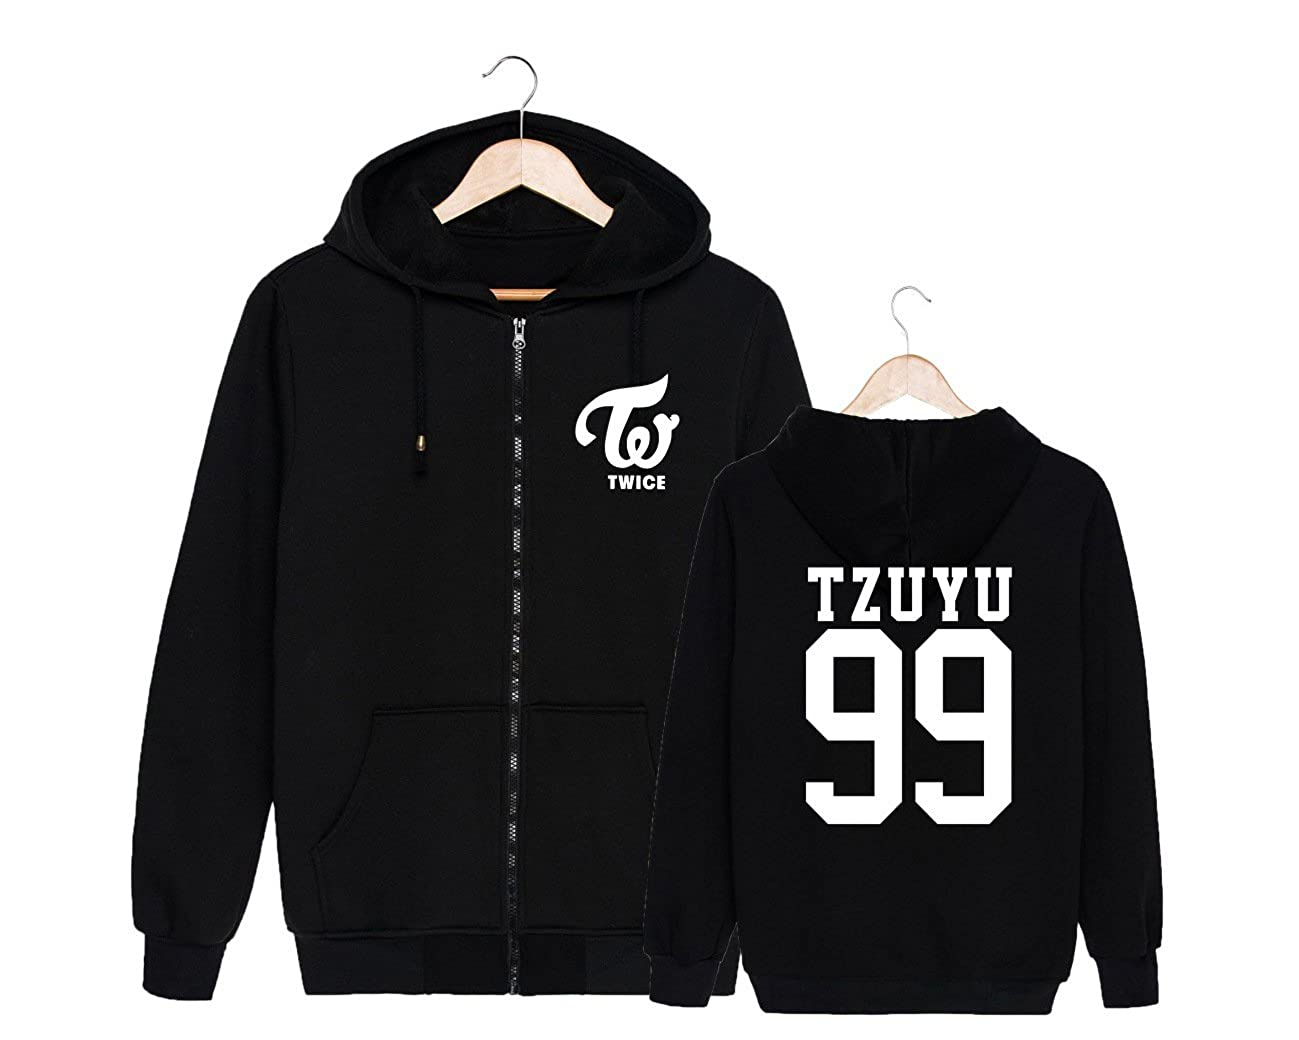 ALLDECOR Twice Thick Hooded Pullover Sweater Kpop Cotton Long Sleeve Hoodie Coat